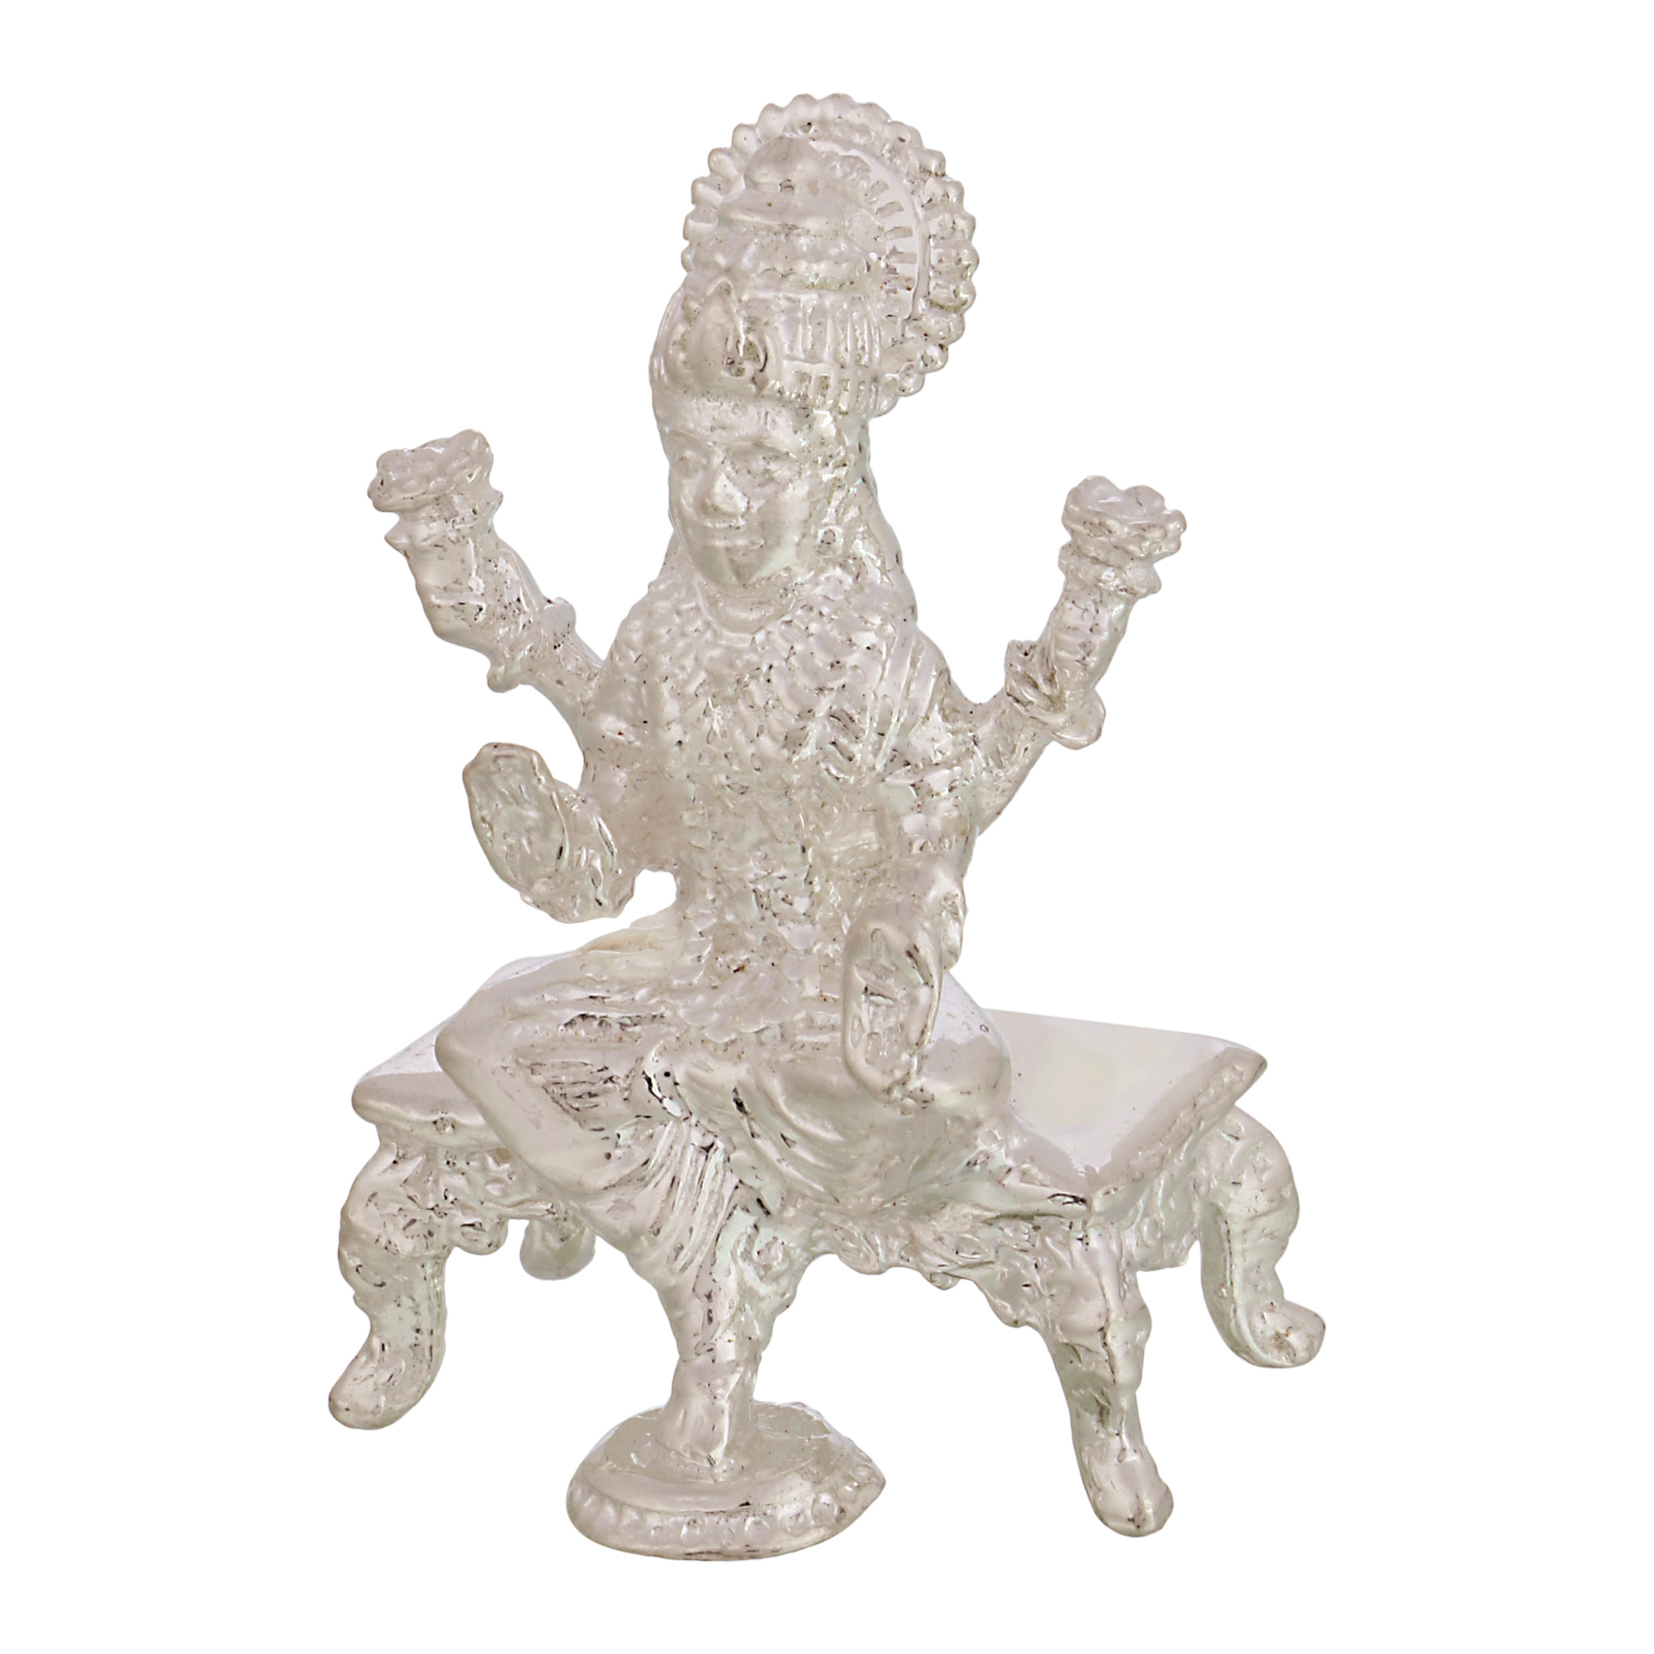 Laxmi ji in Silver by Osasbazaar Right